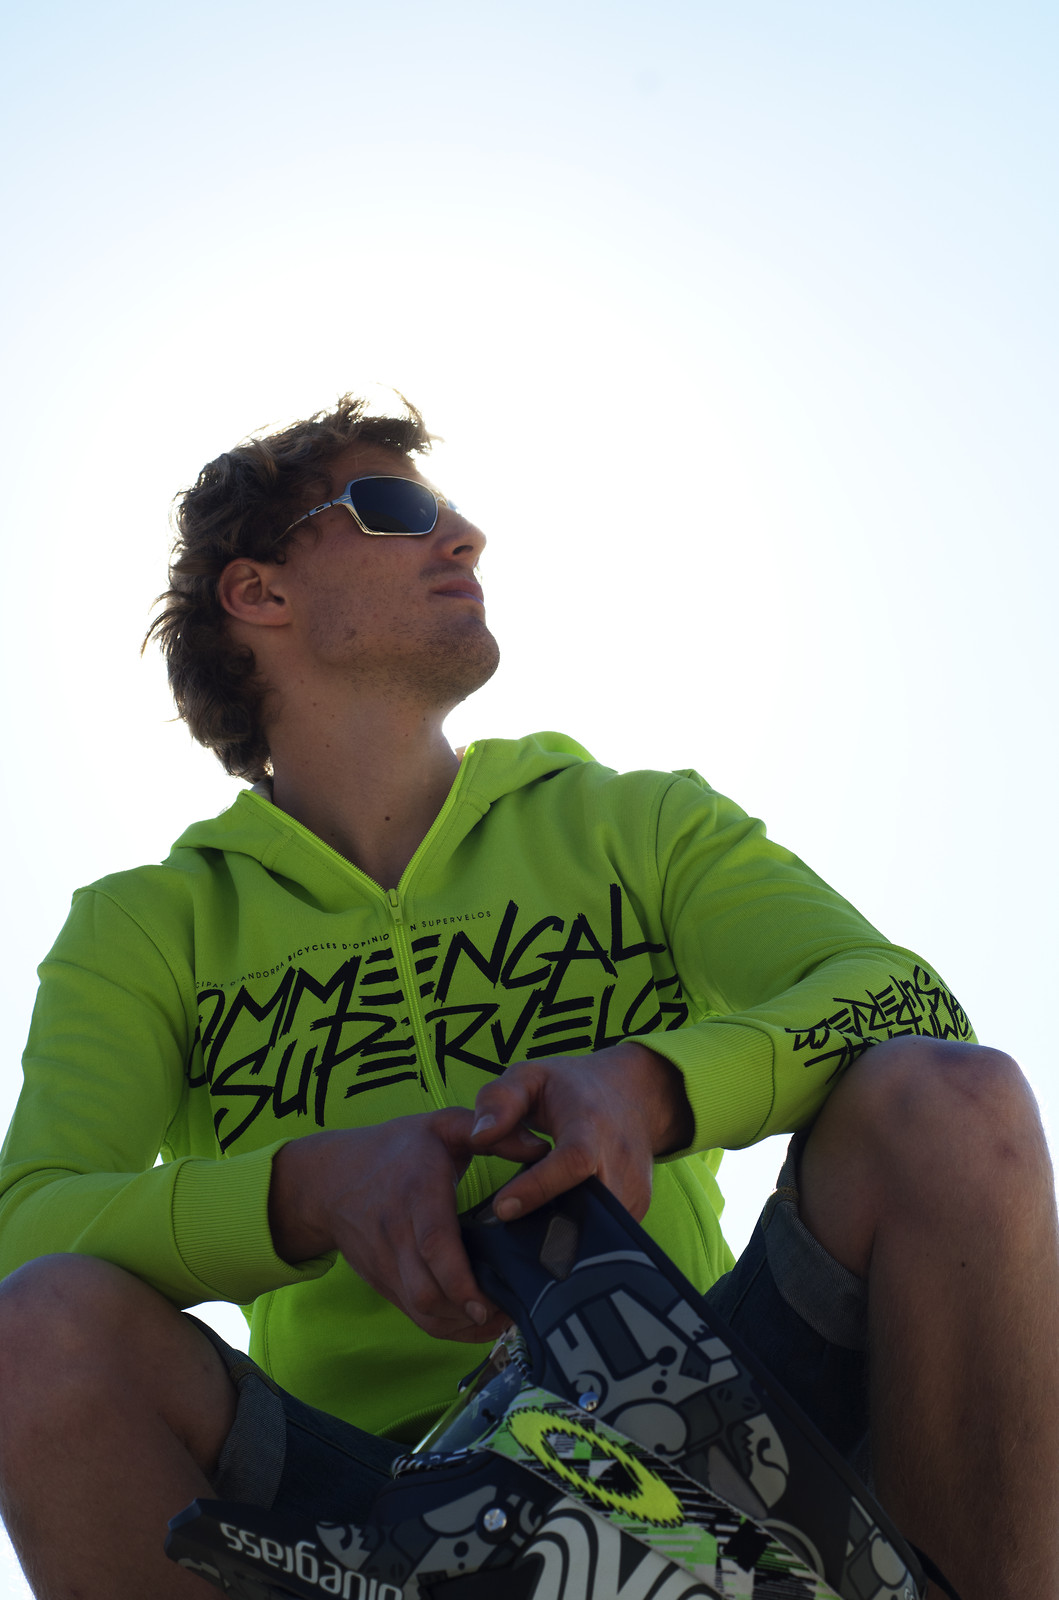 Commencal 2013 Zipped Hoodies  lifestyle hoodies 33